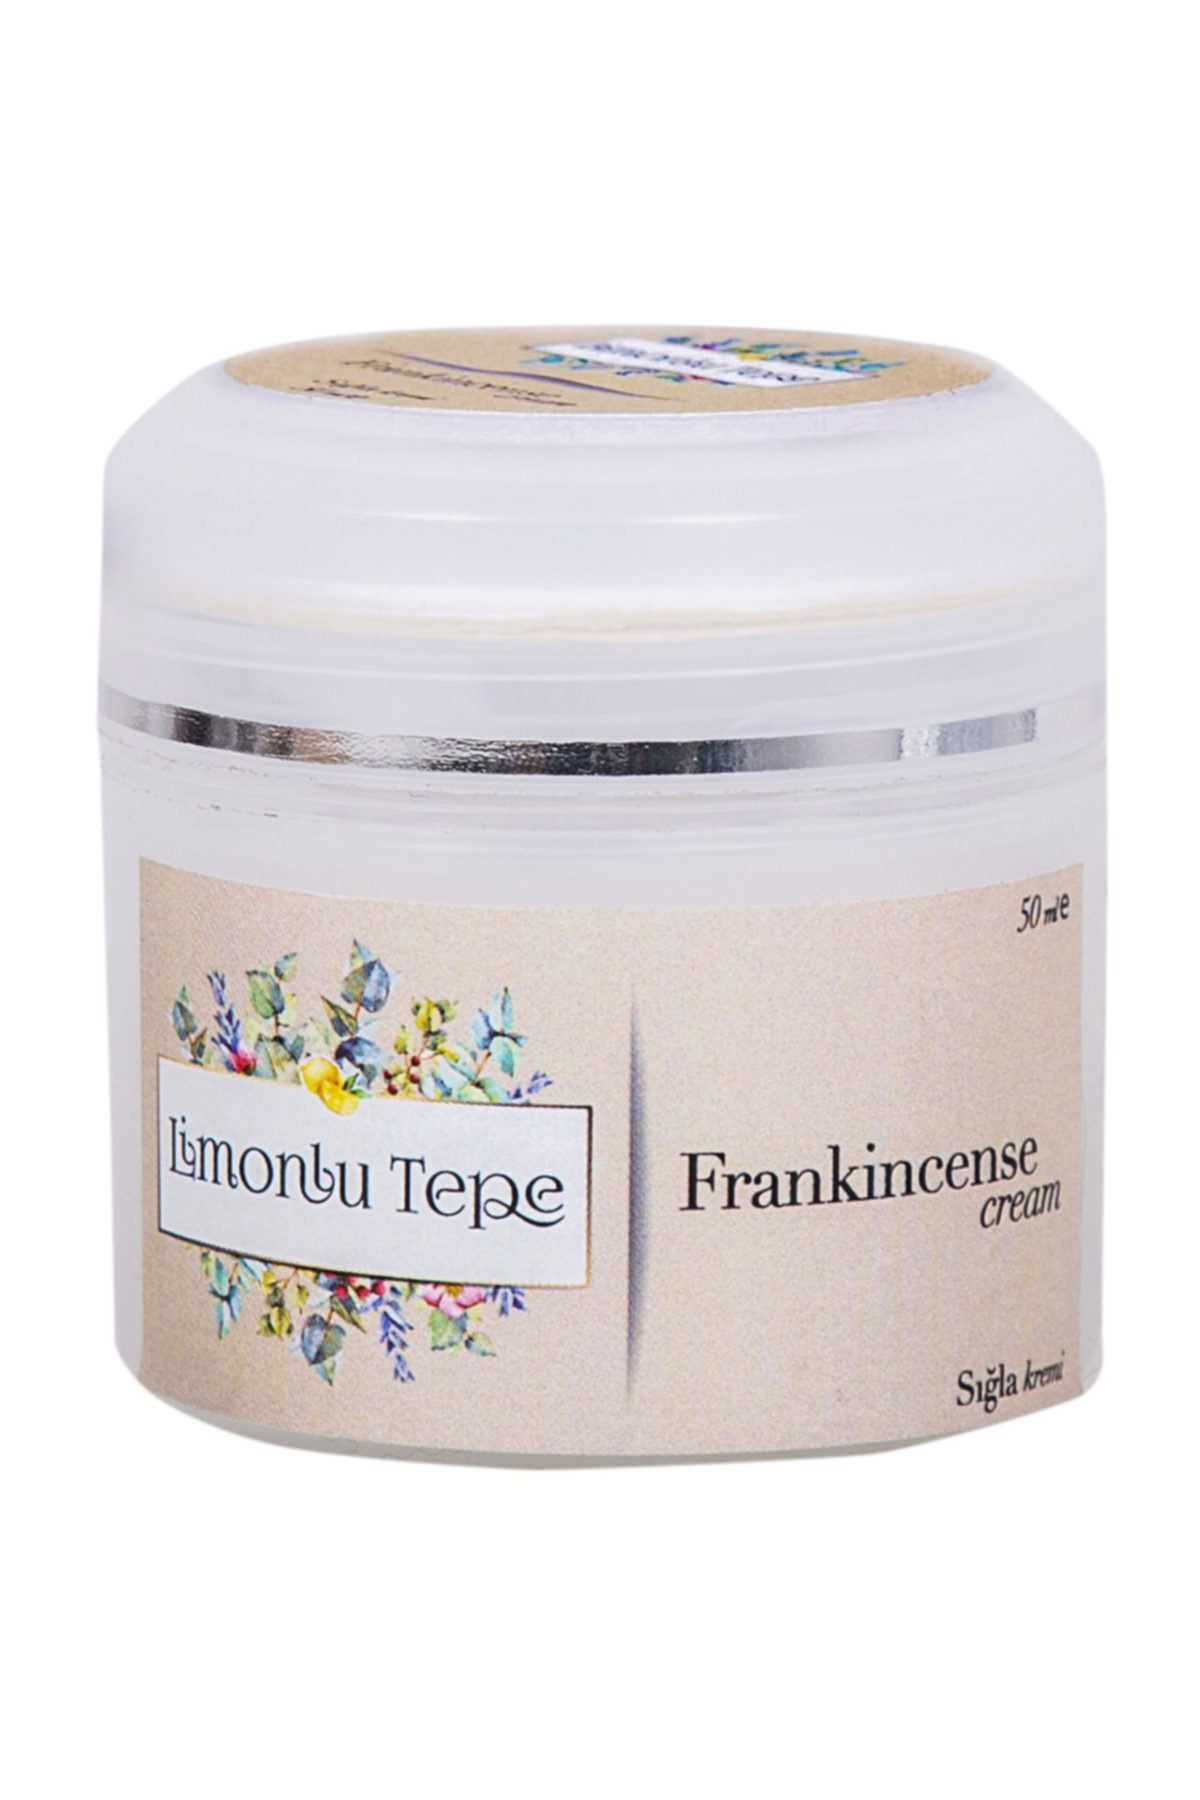 50 Ml Face Lift,Neck,Under Eye Bags, Anti Aging, Moisturizer,Frankincense Cream,Healing Oil,Repair ,Endemic,Special Product